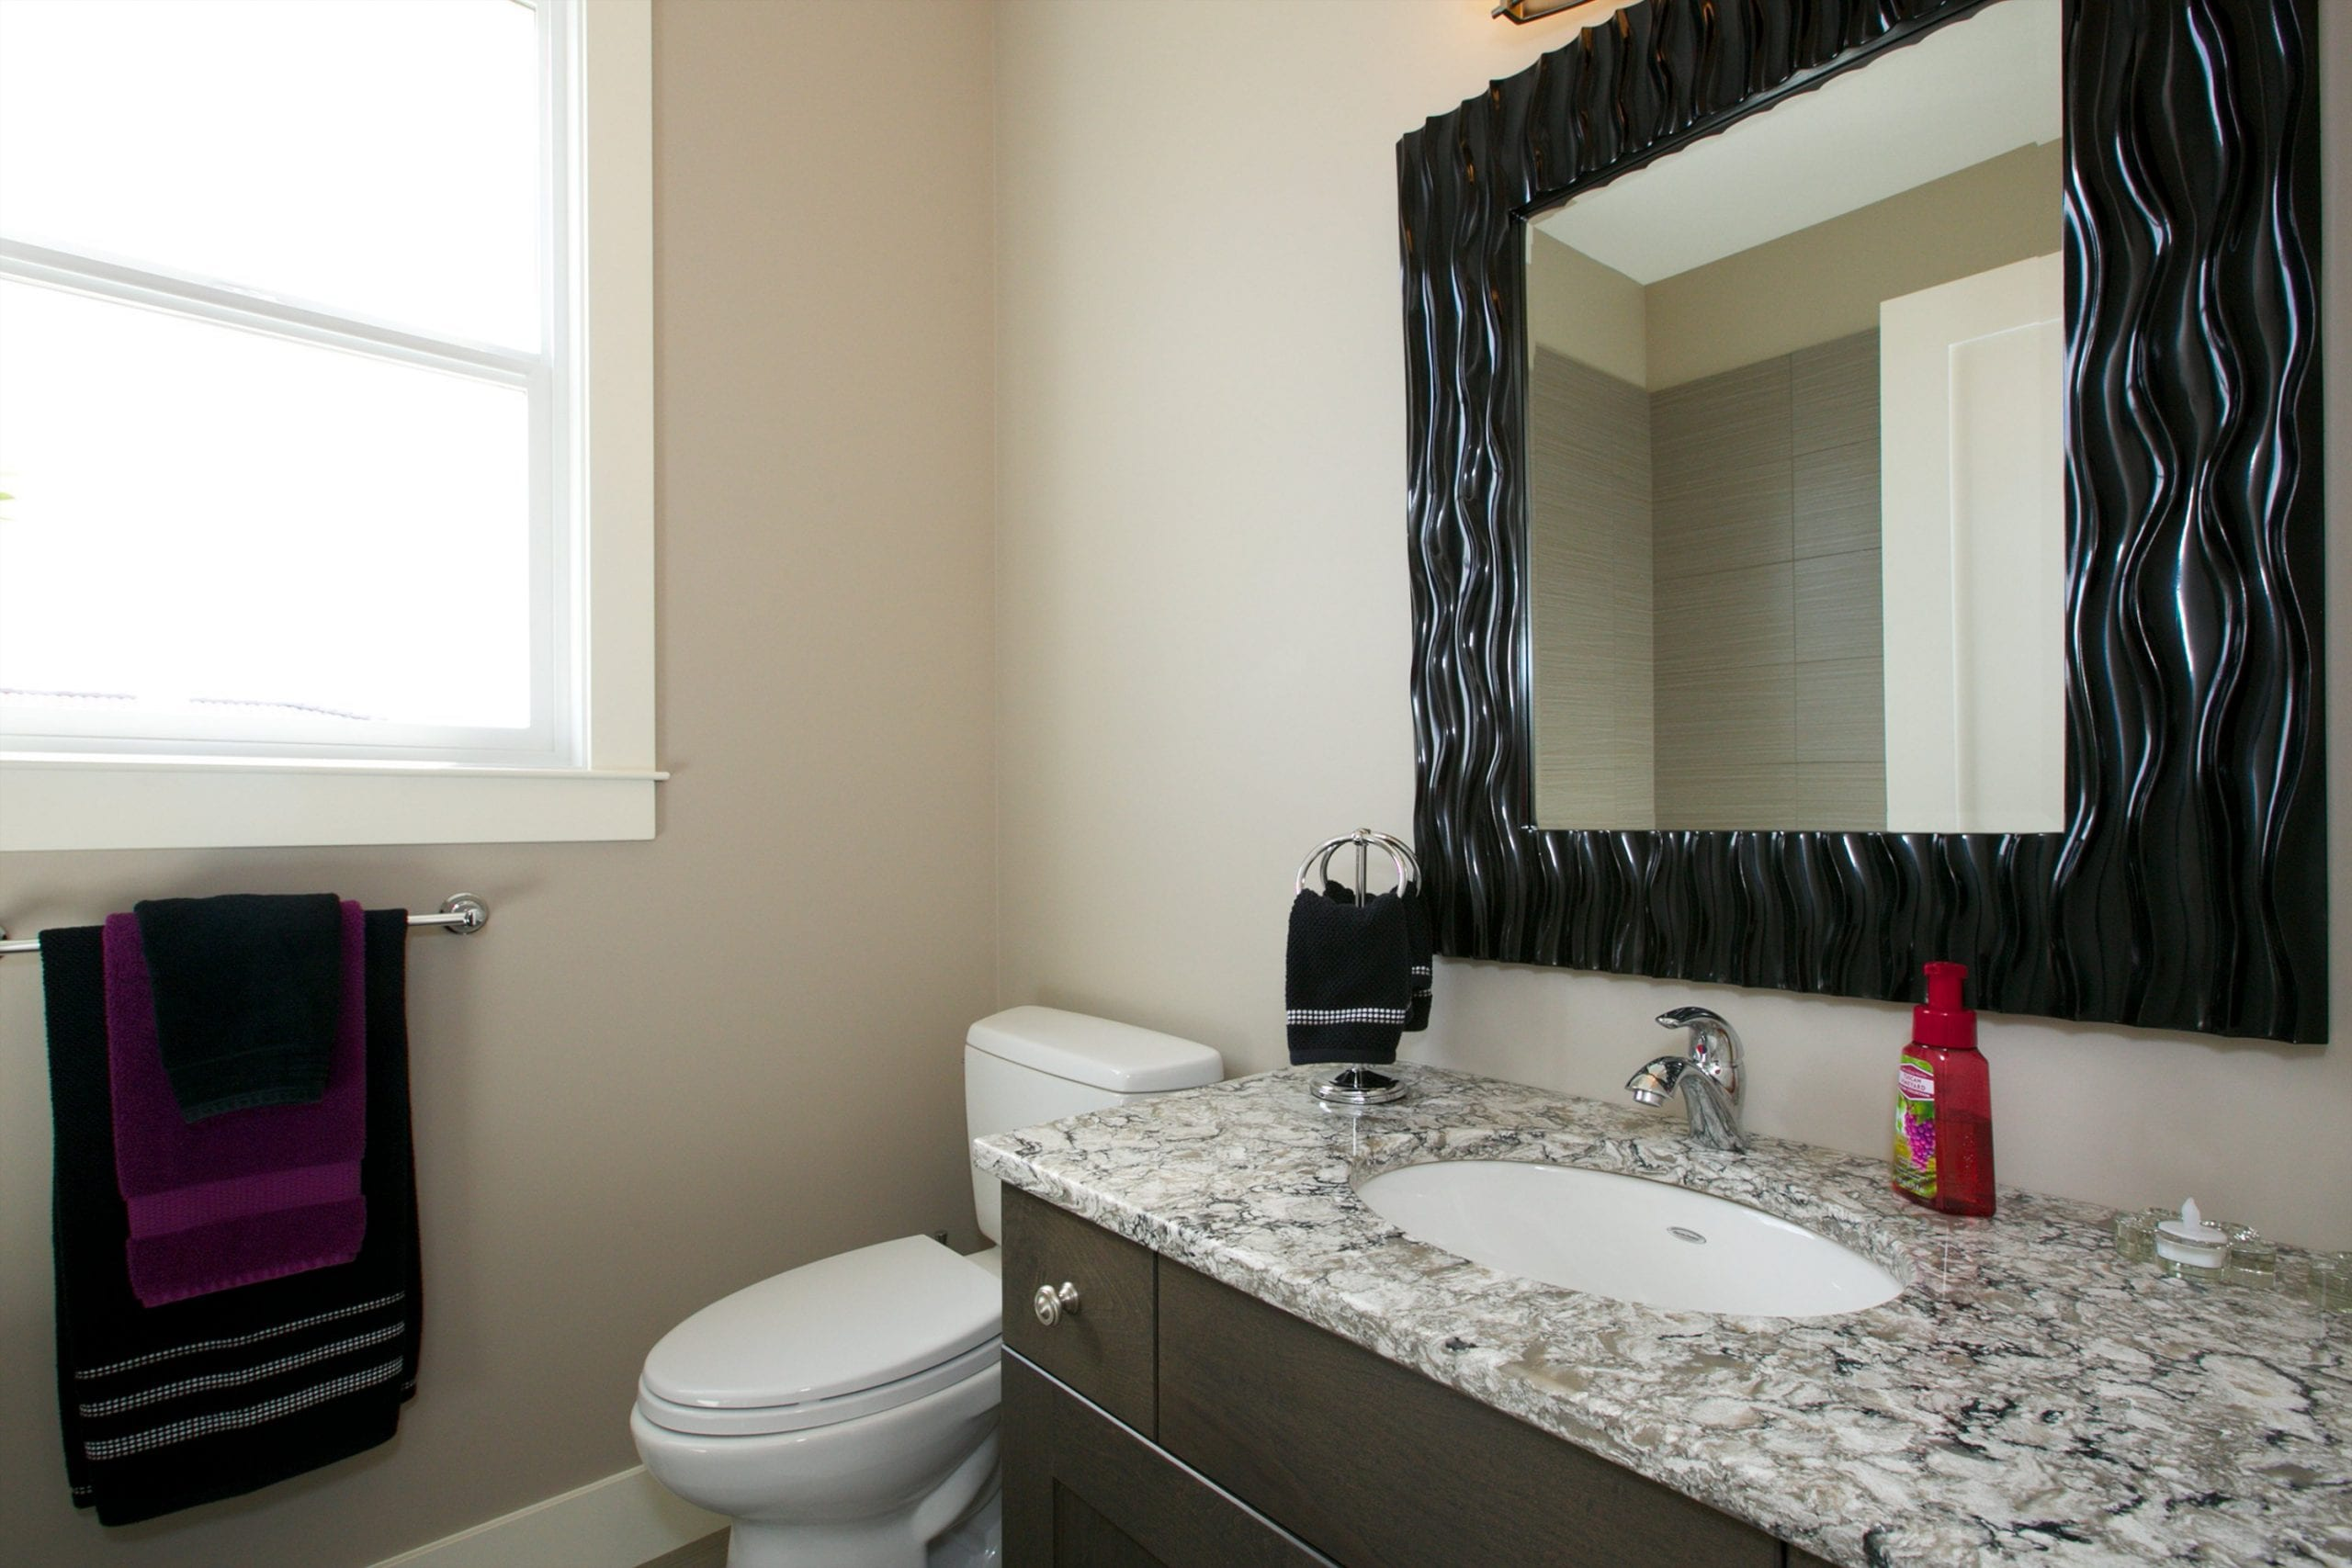 interior shot of west harbour home bathroom featuring a toilet a mirror a sink and multiple towels hung up